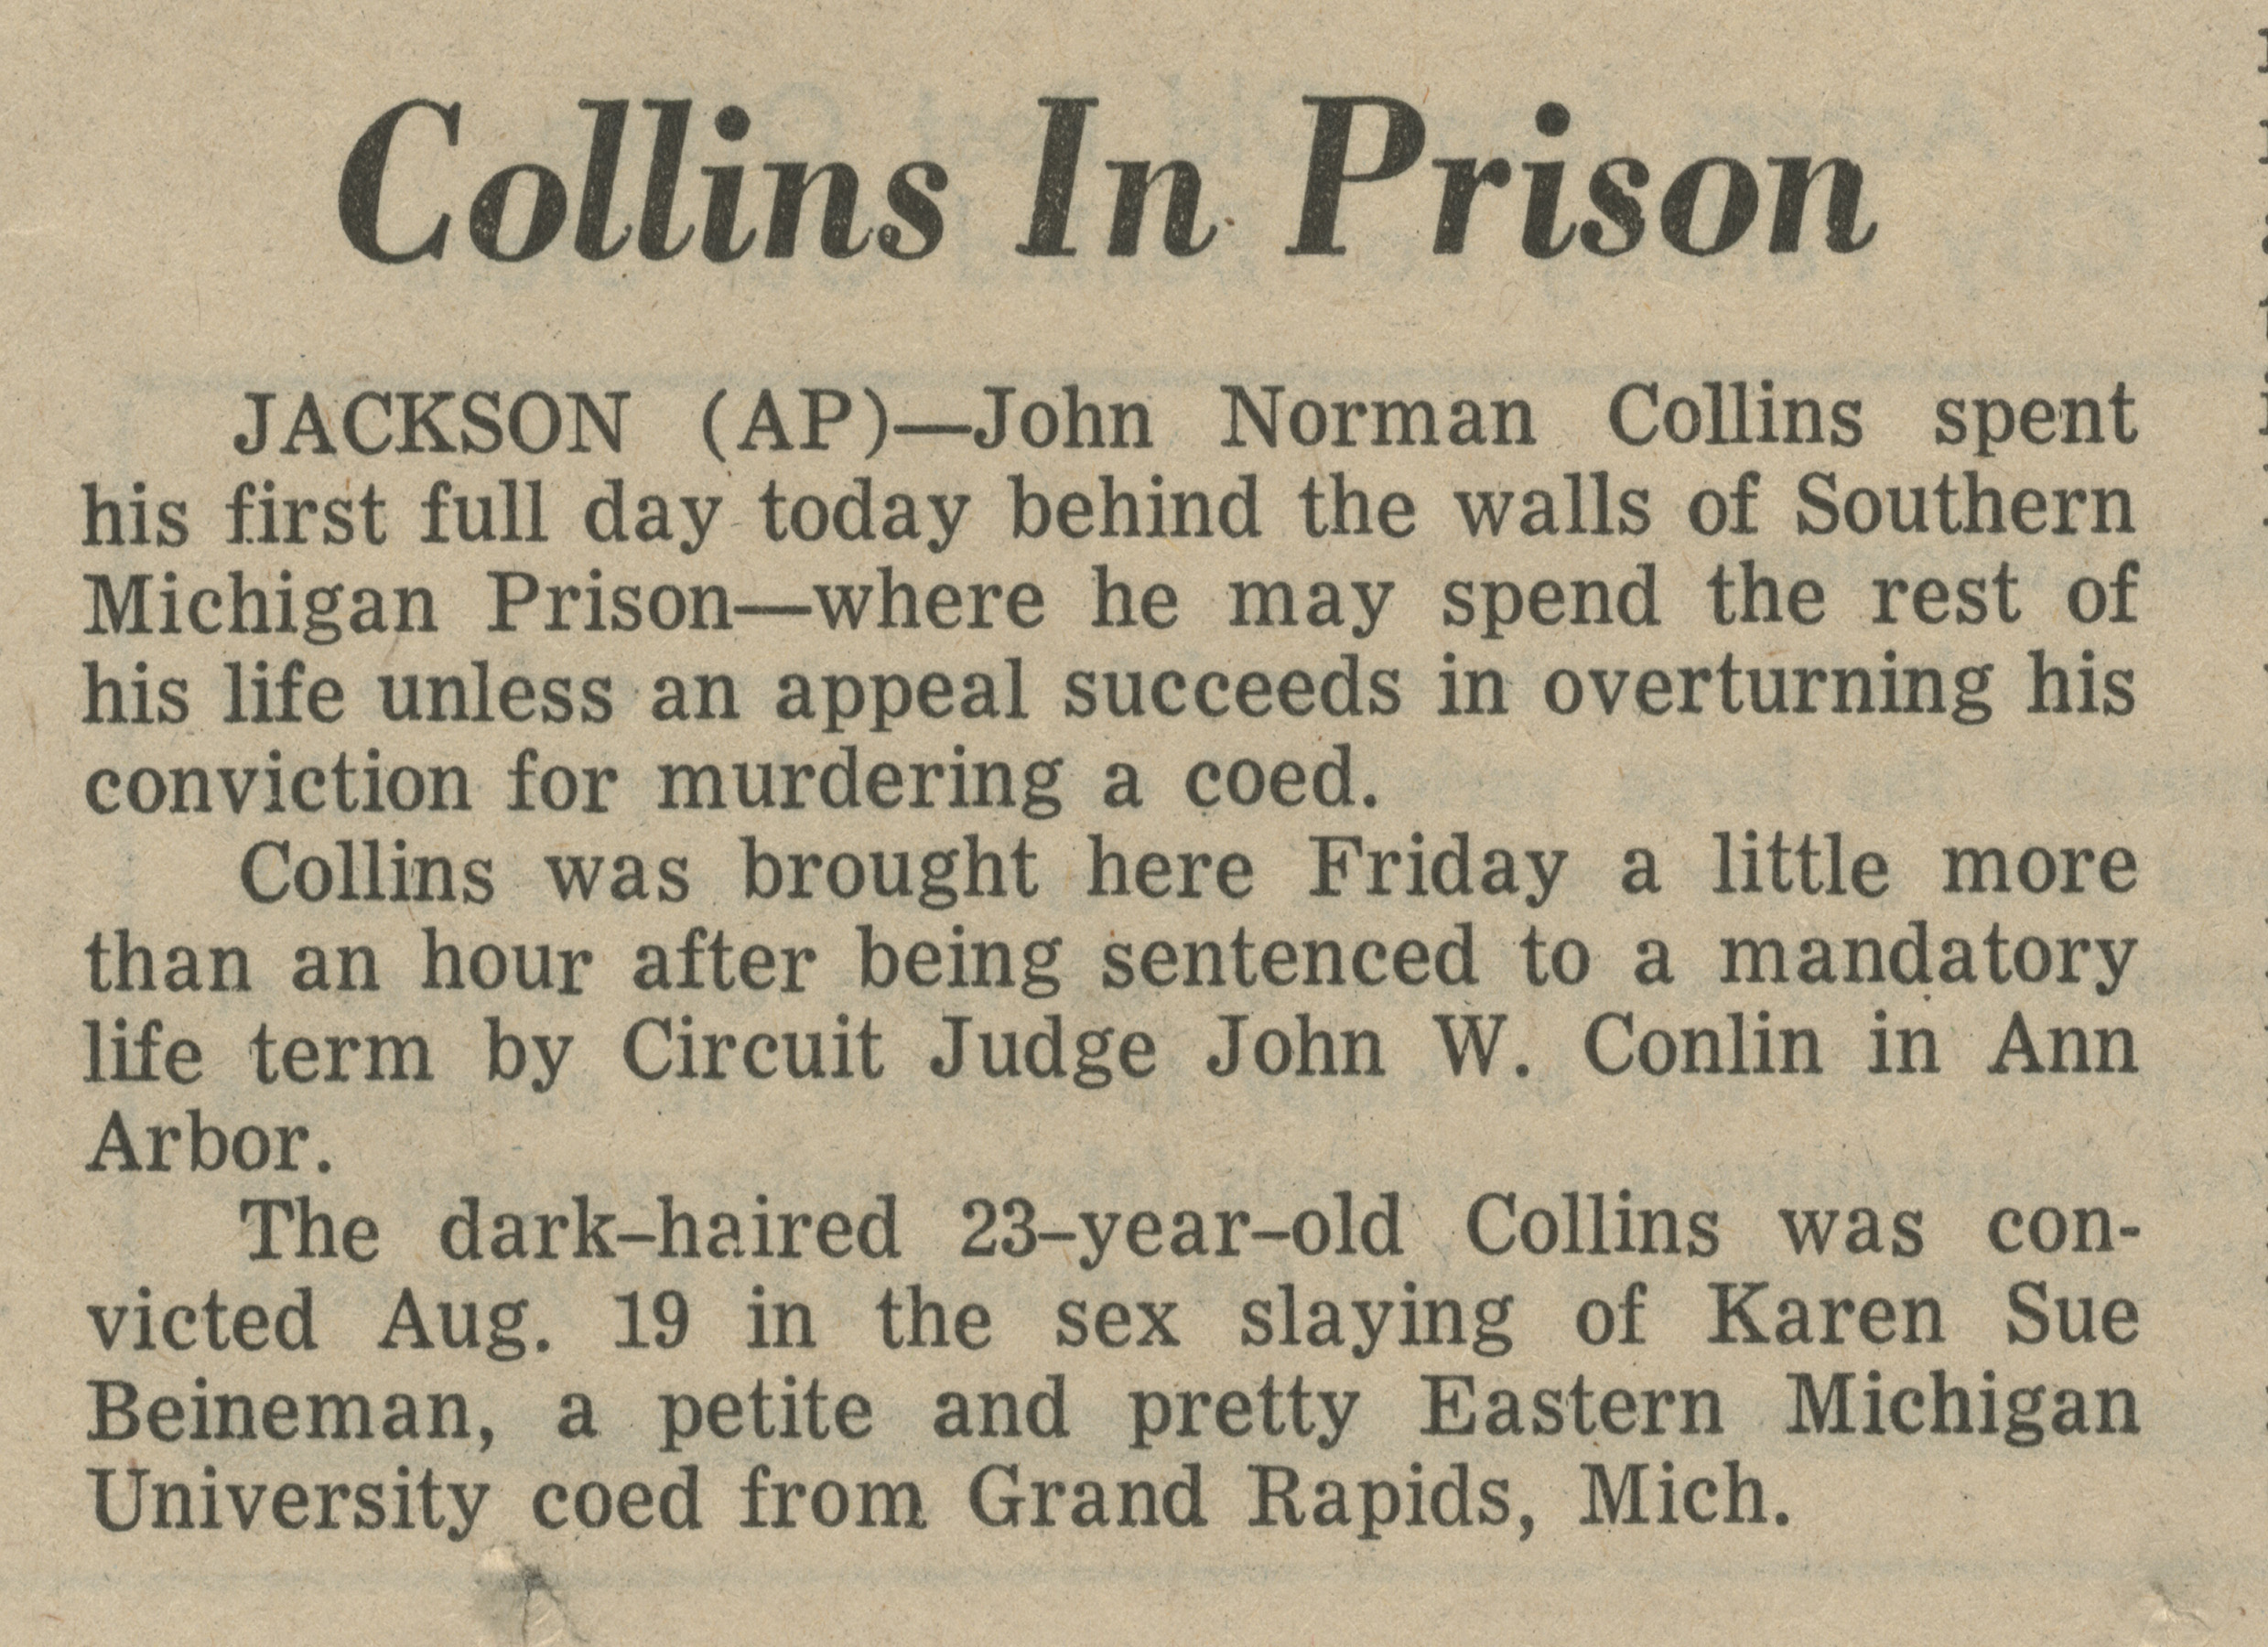 Collins In Prison image